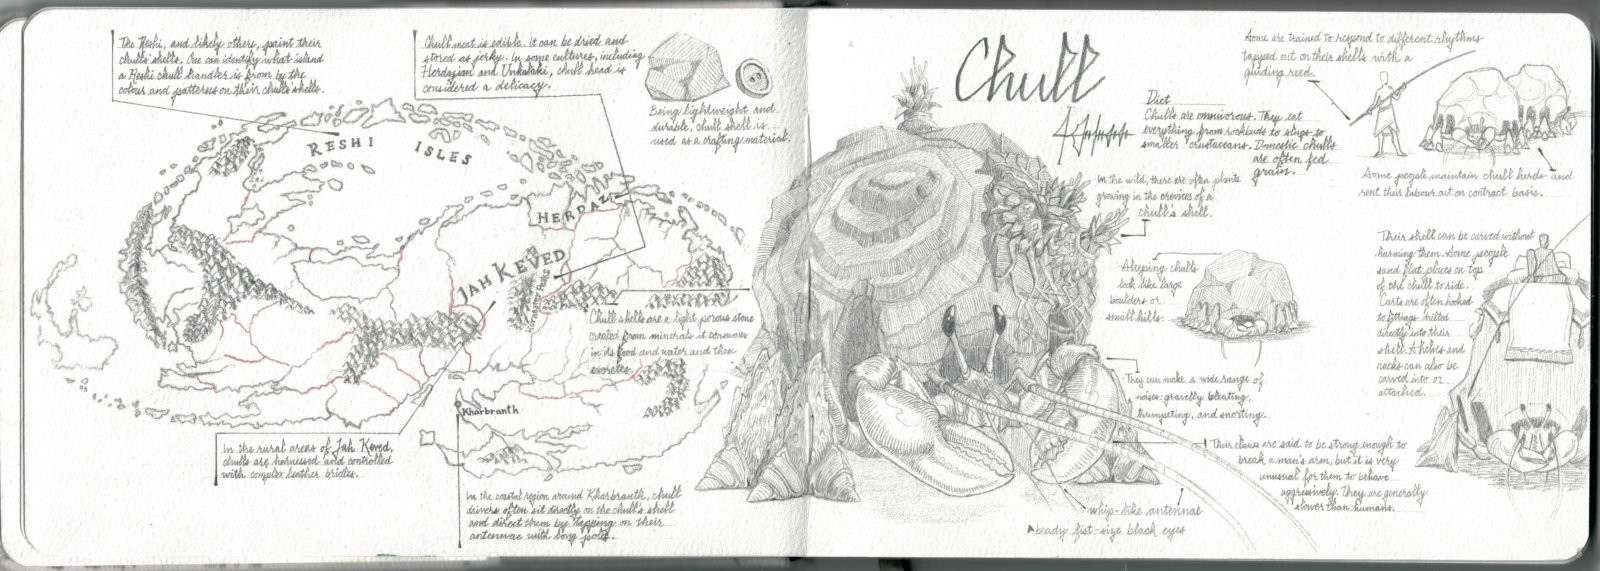 Chull Pages Scanned